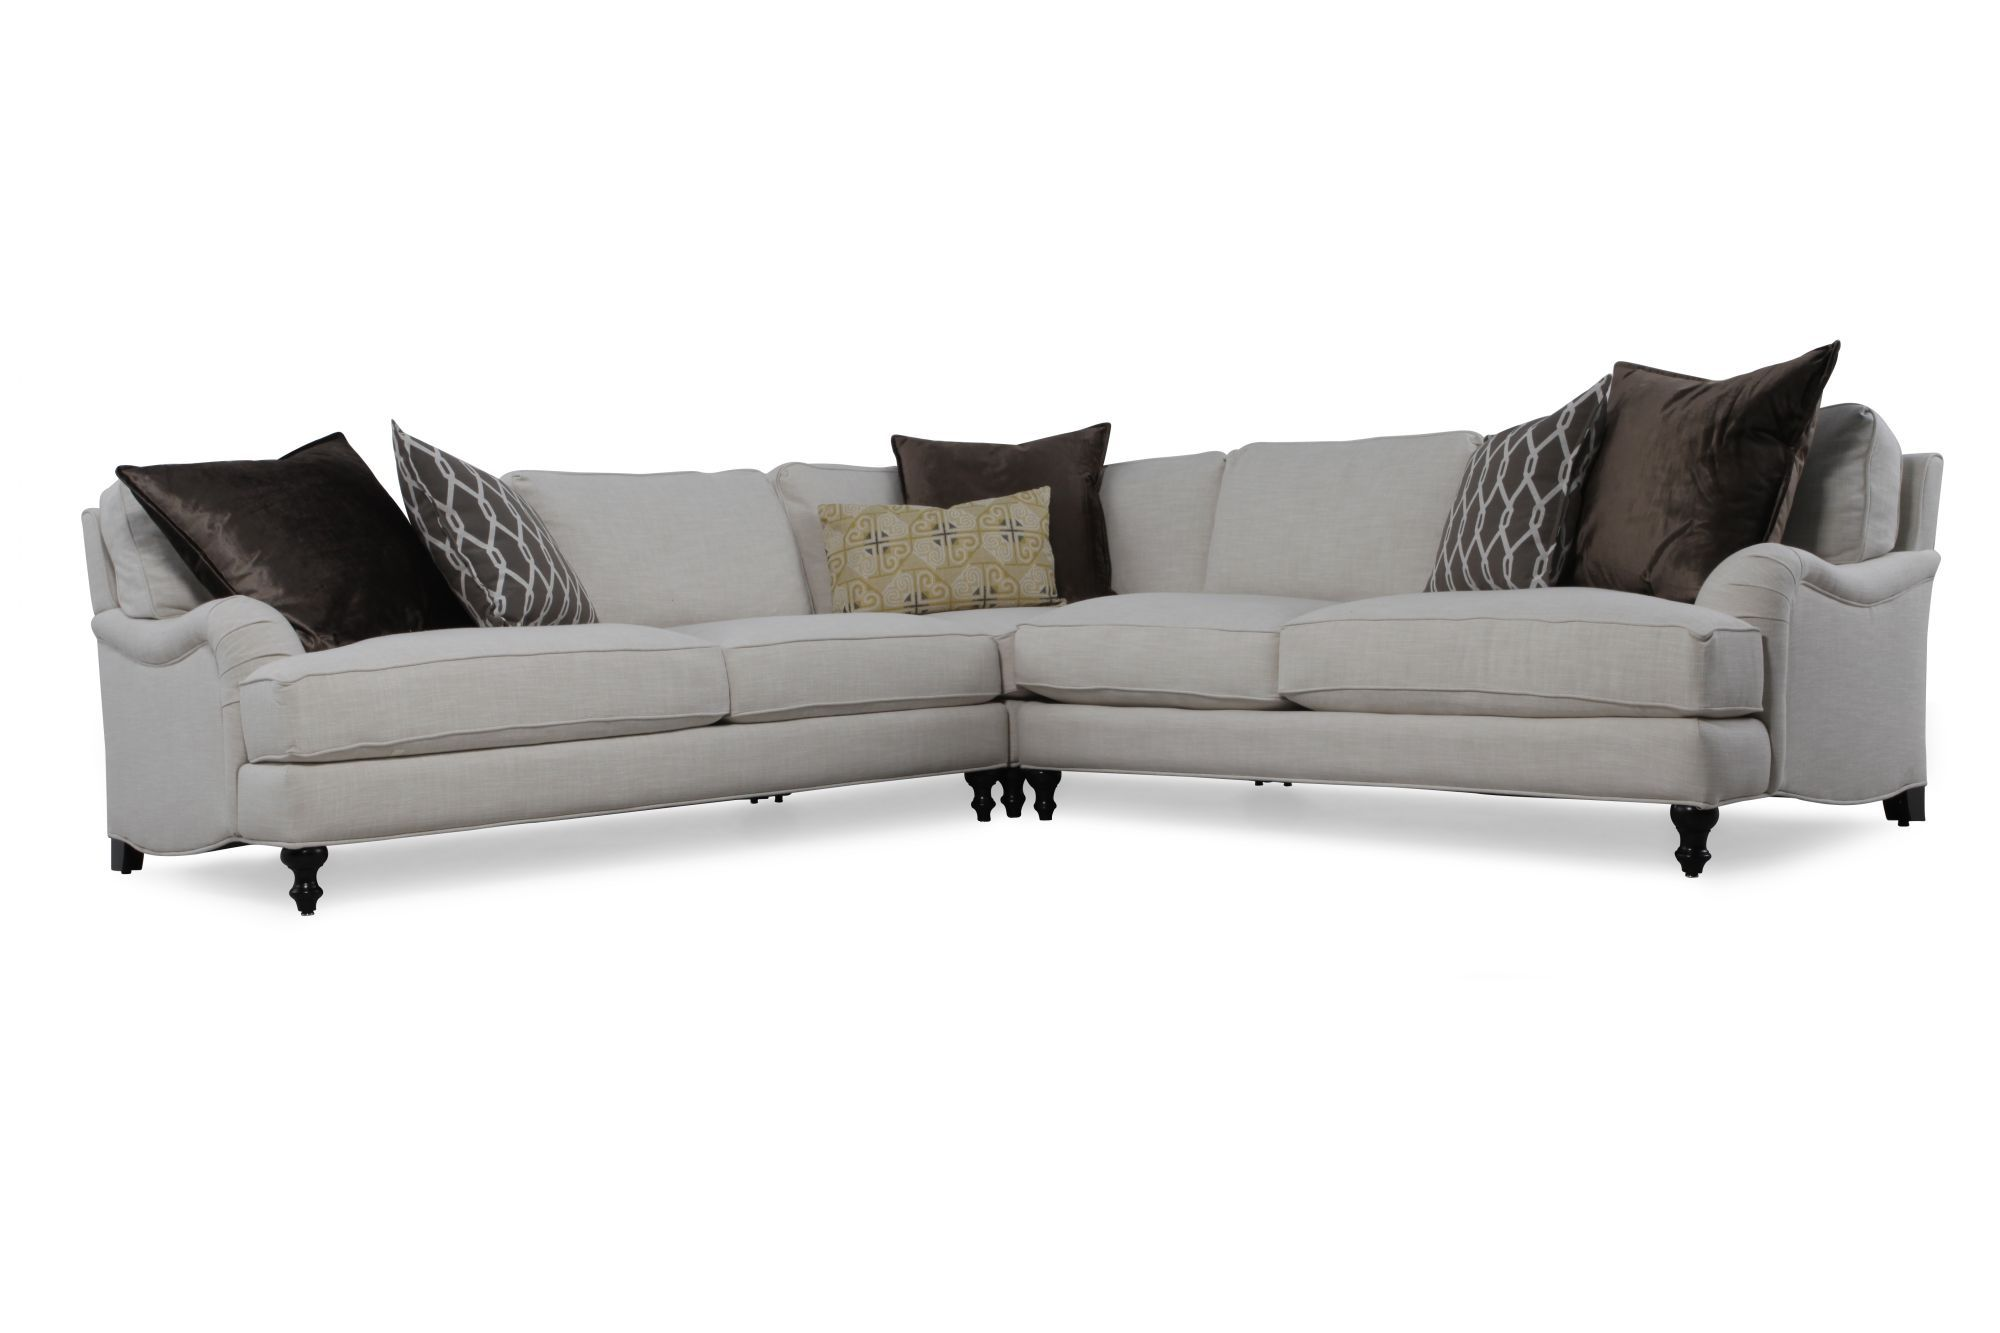 Mathis Brothers Living Room Furniture Jonathan Louis Clarice Sectional Furniture Pinterest